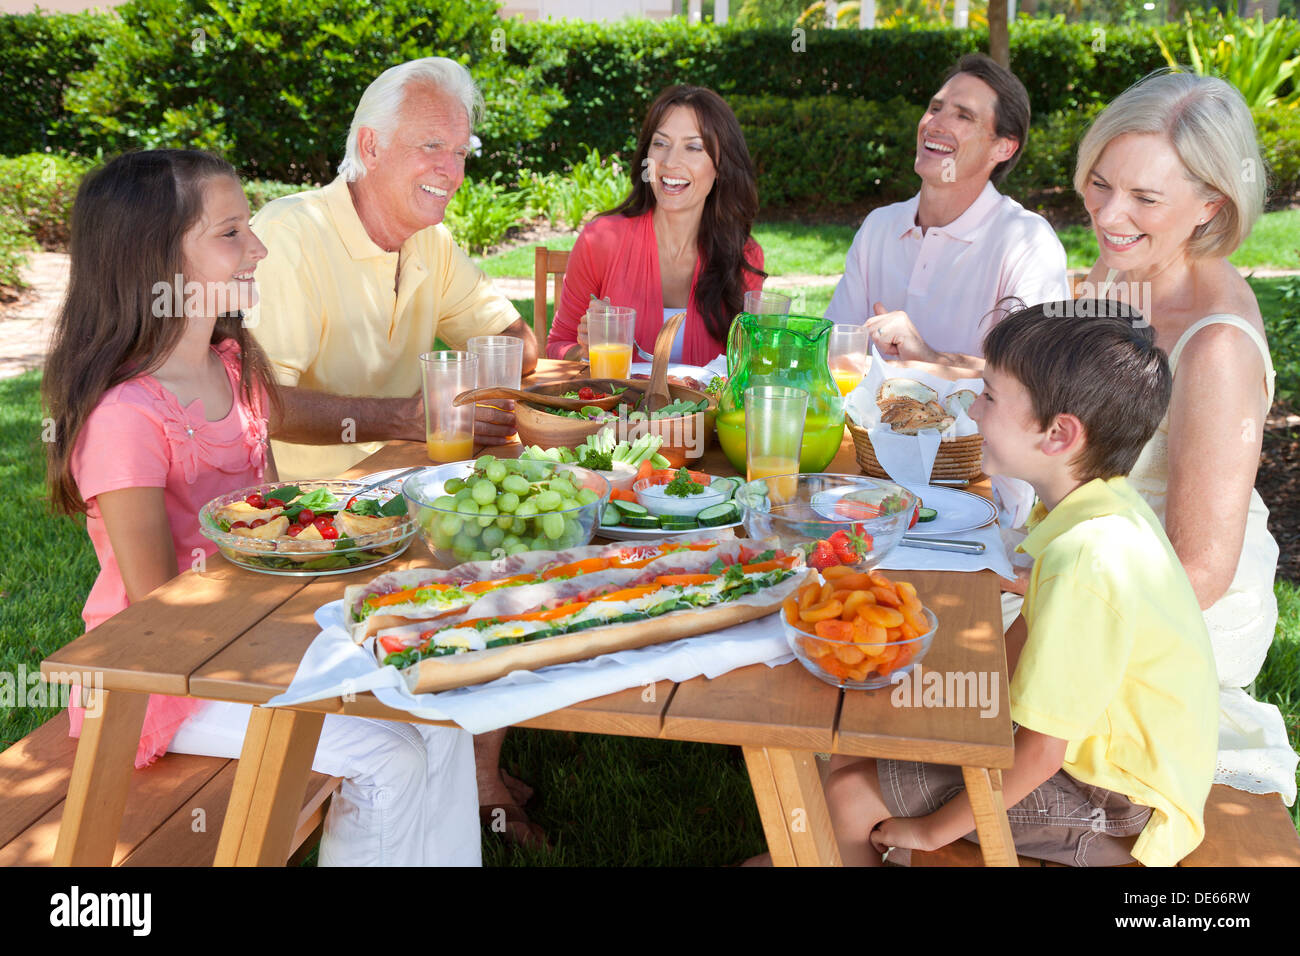 Attractive happy, smiling family of mother, father, grandparents, son and daughter eating healthy food at a picnic table outside - Stock Image